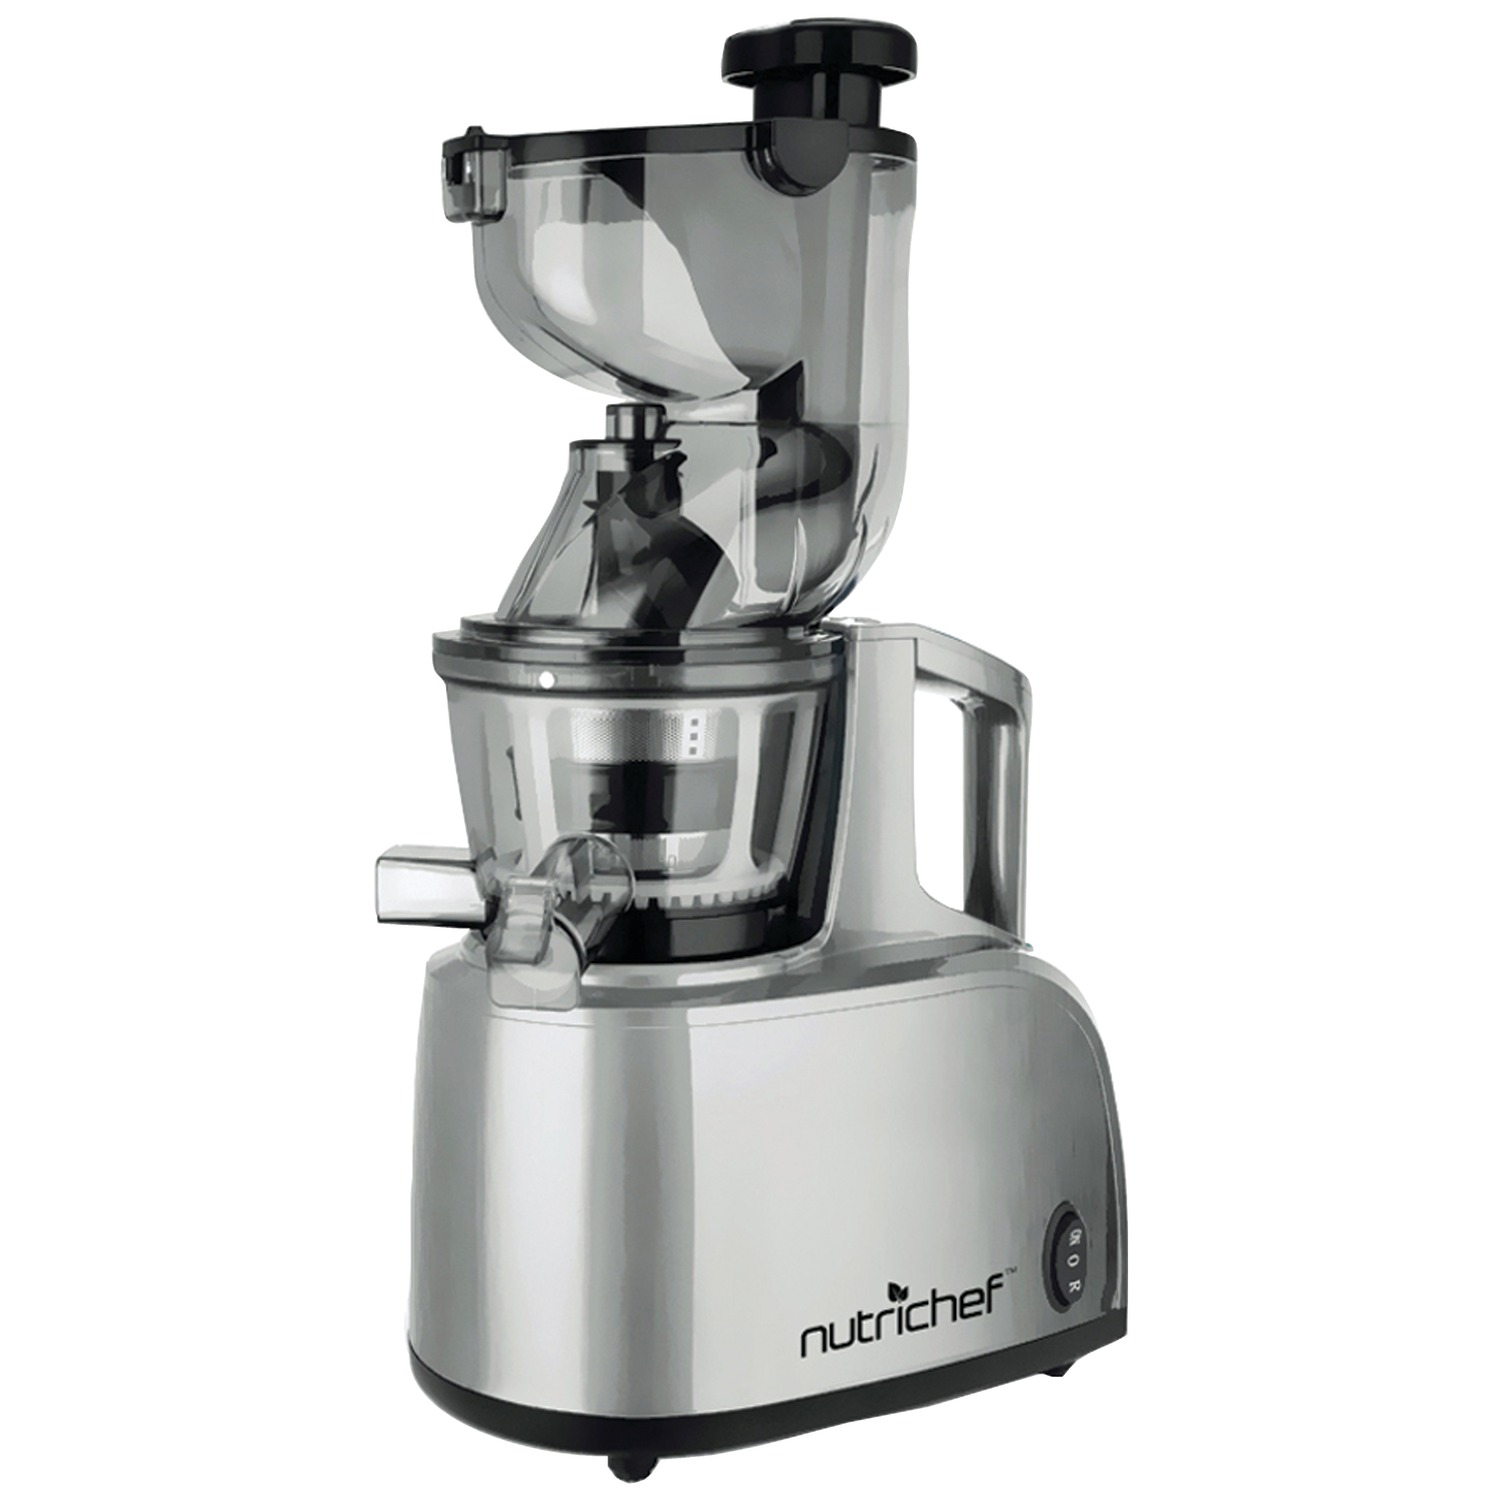 NUTRICHEF PKSJ40 Countertop Masticating Slow Juicer ...